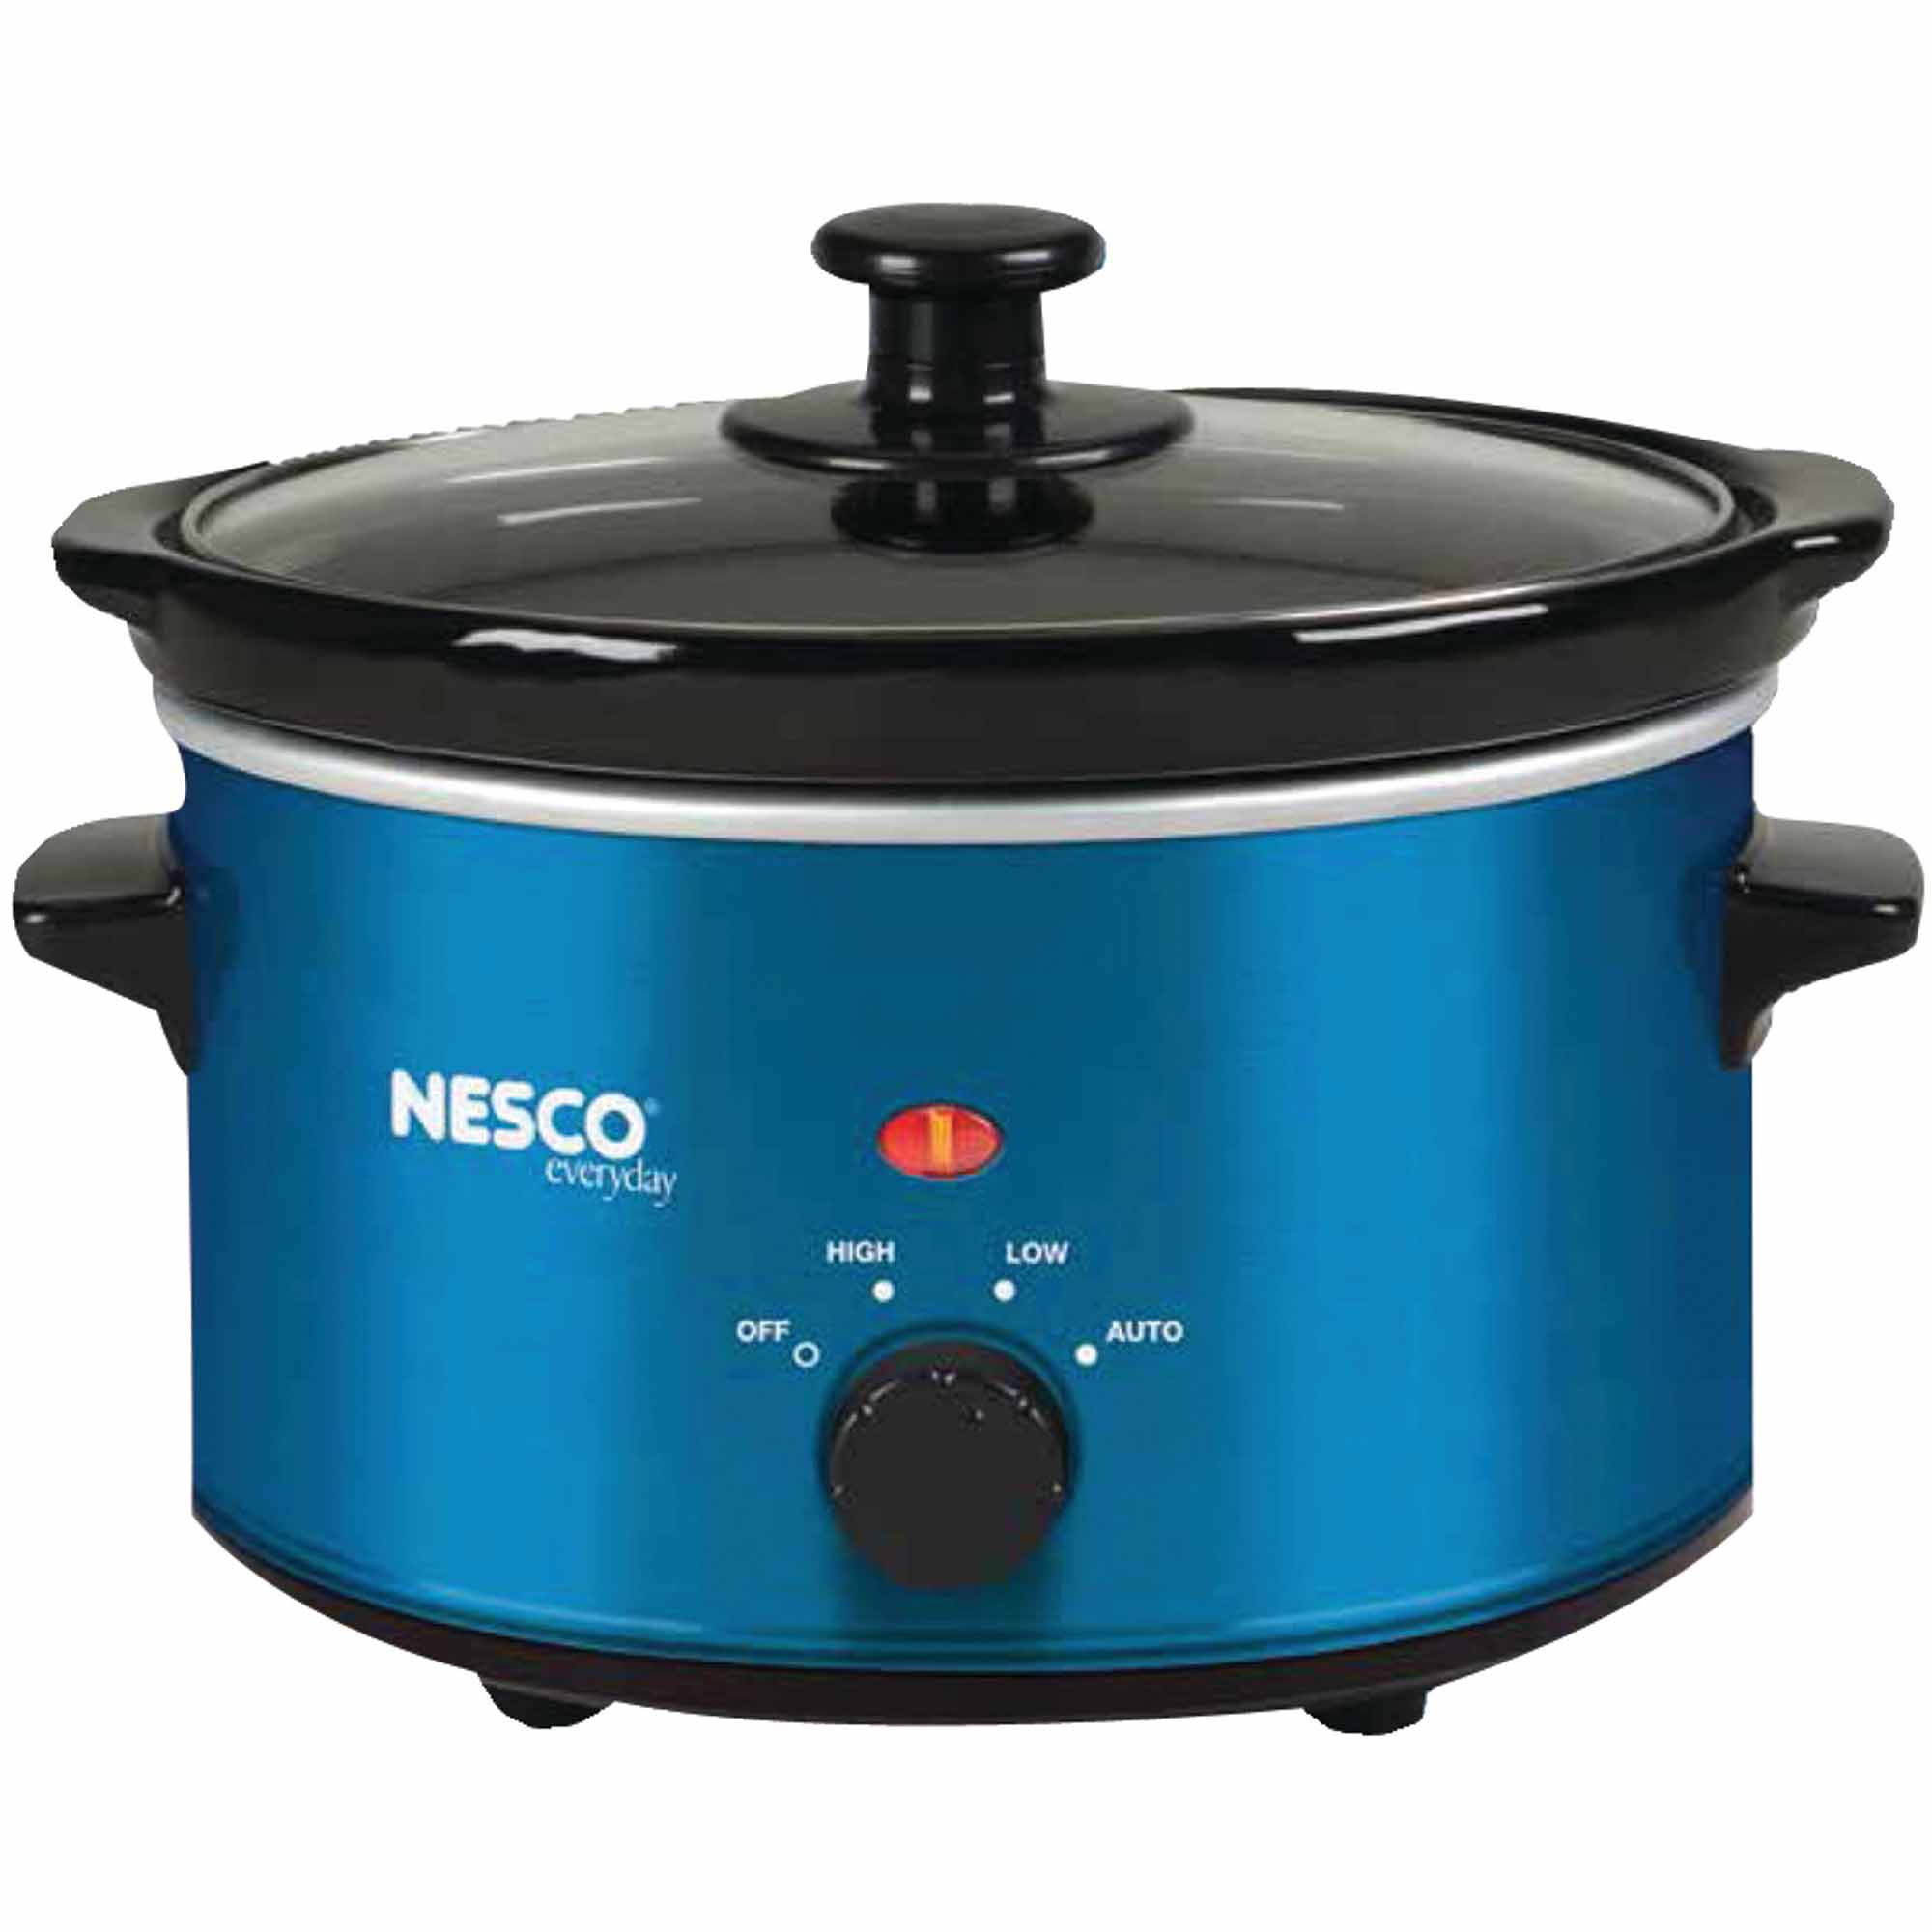 Nesco SC-150B 1.5-Quart Oval Slow Cooker, Metallic Blue